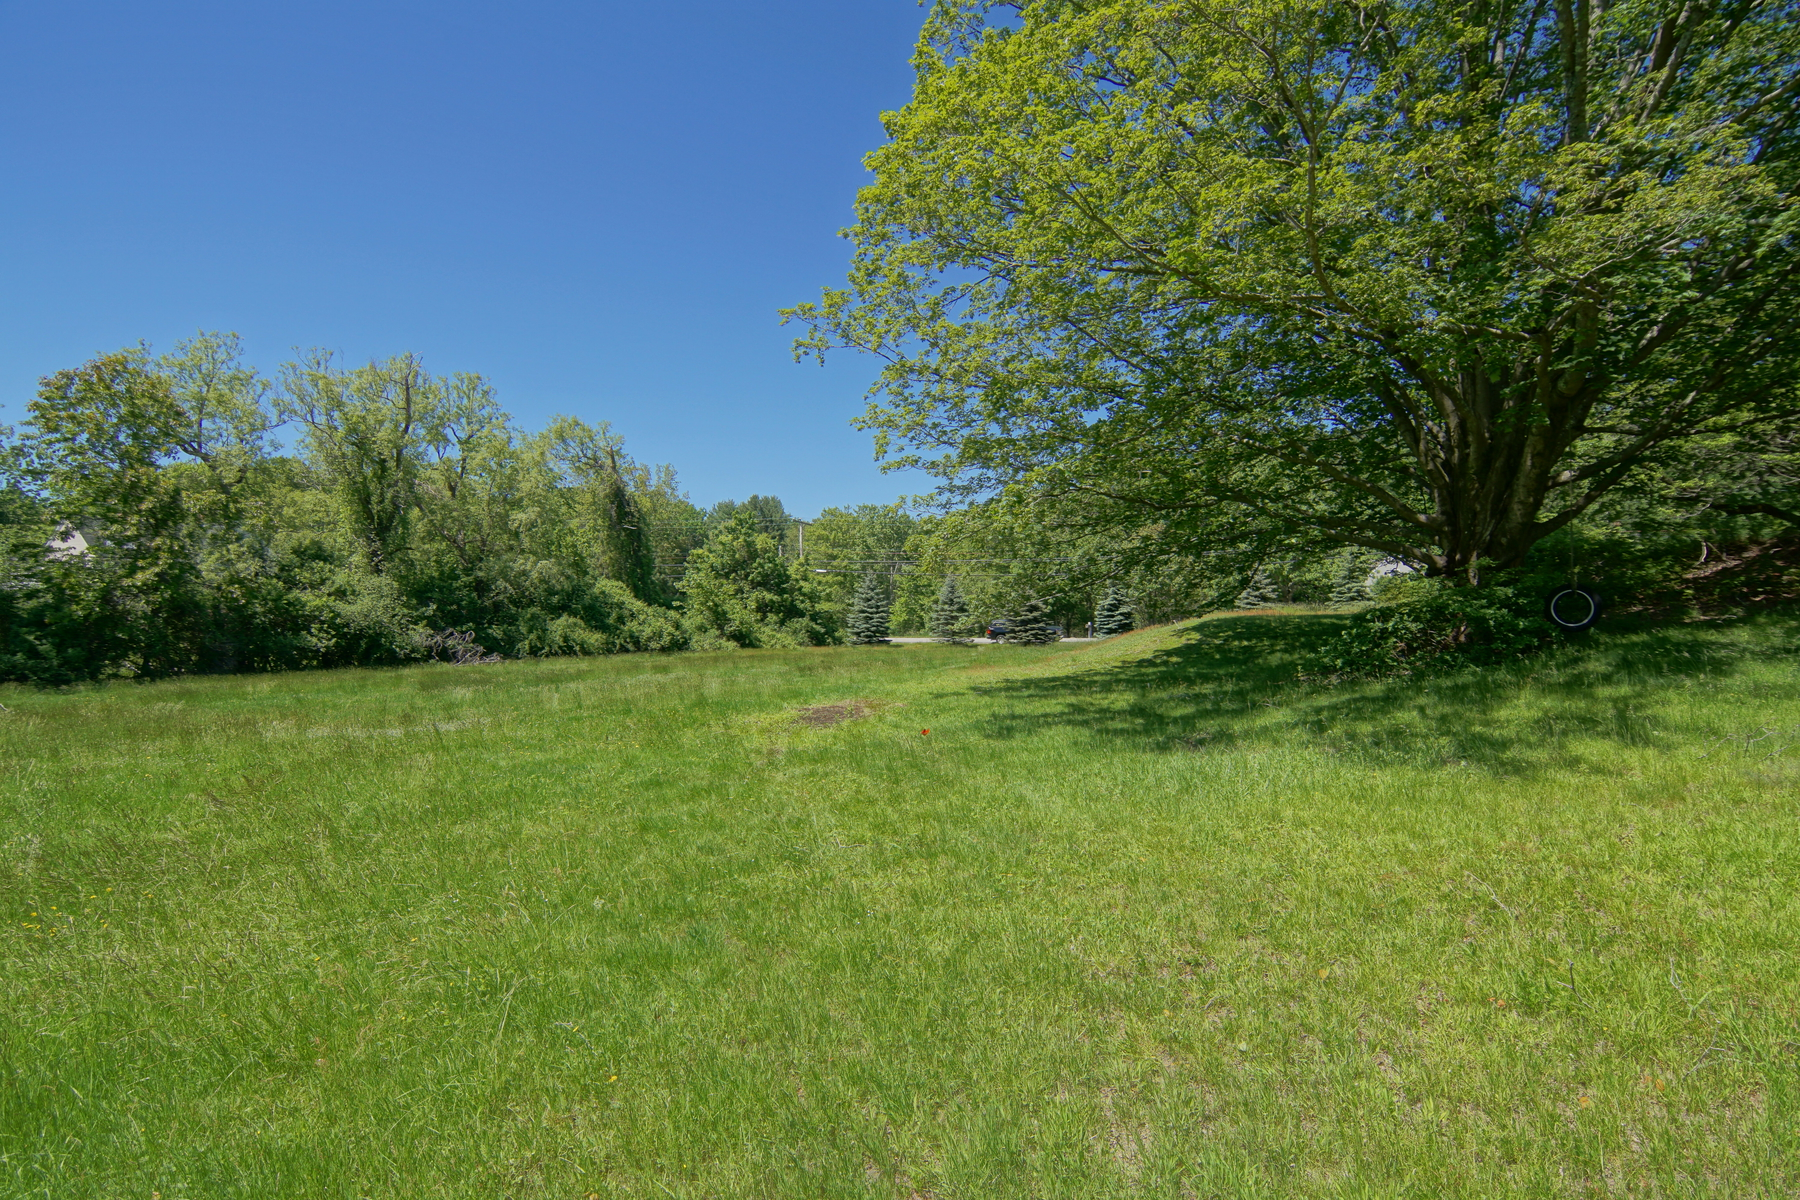 Land for Sale at Ancient North Hampton Pasture Land For Sale 122 Atlantic Avenue North Hampton, New Hampshire 03862 United States